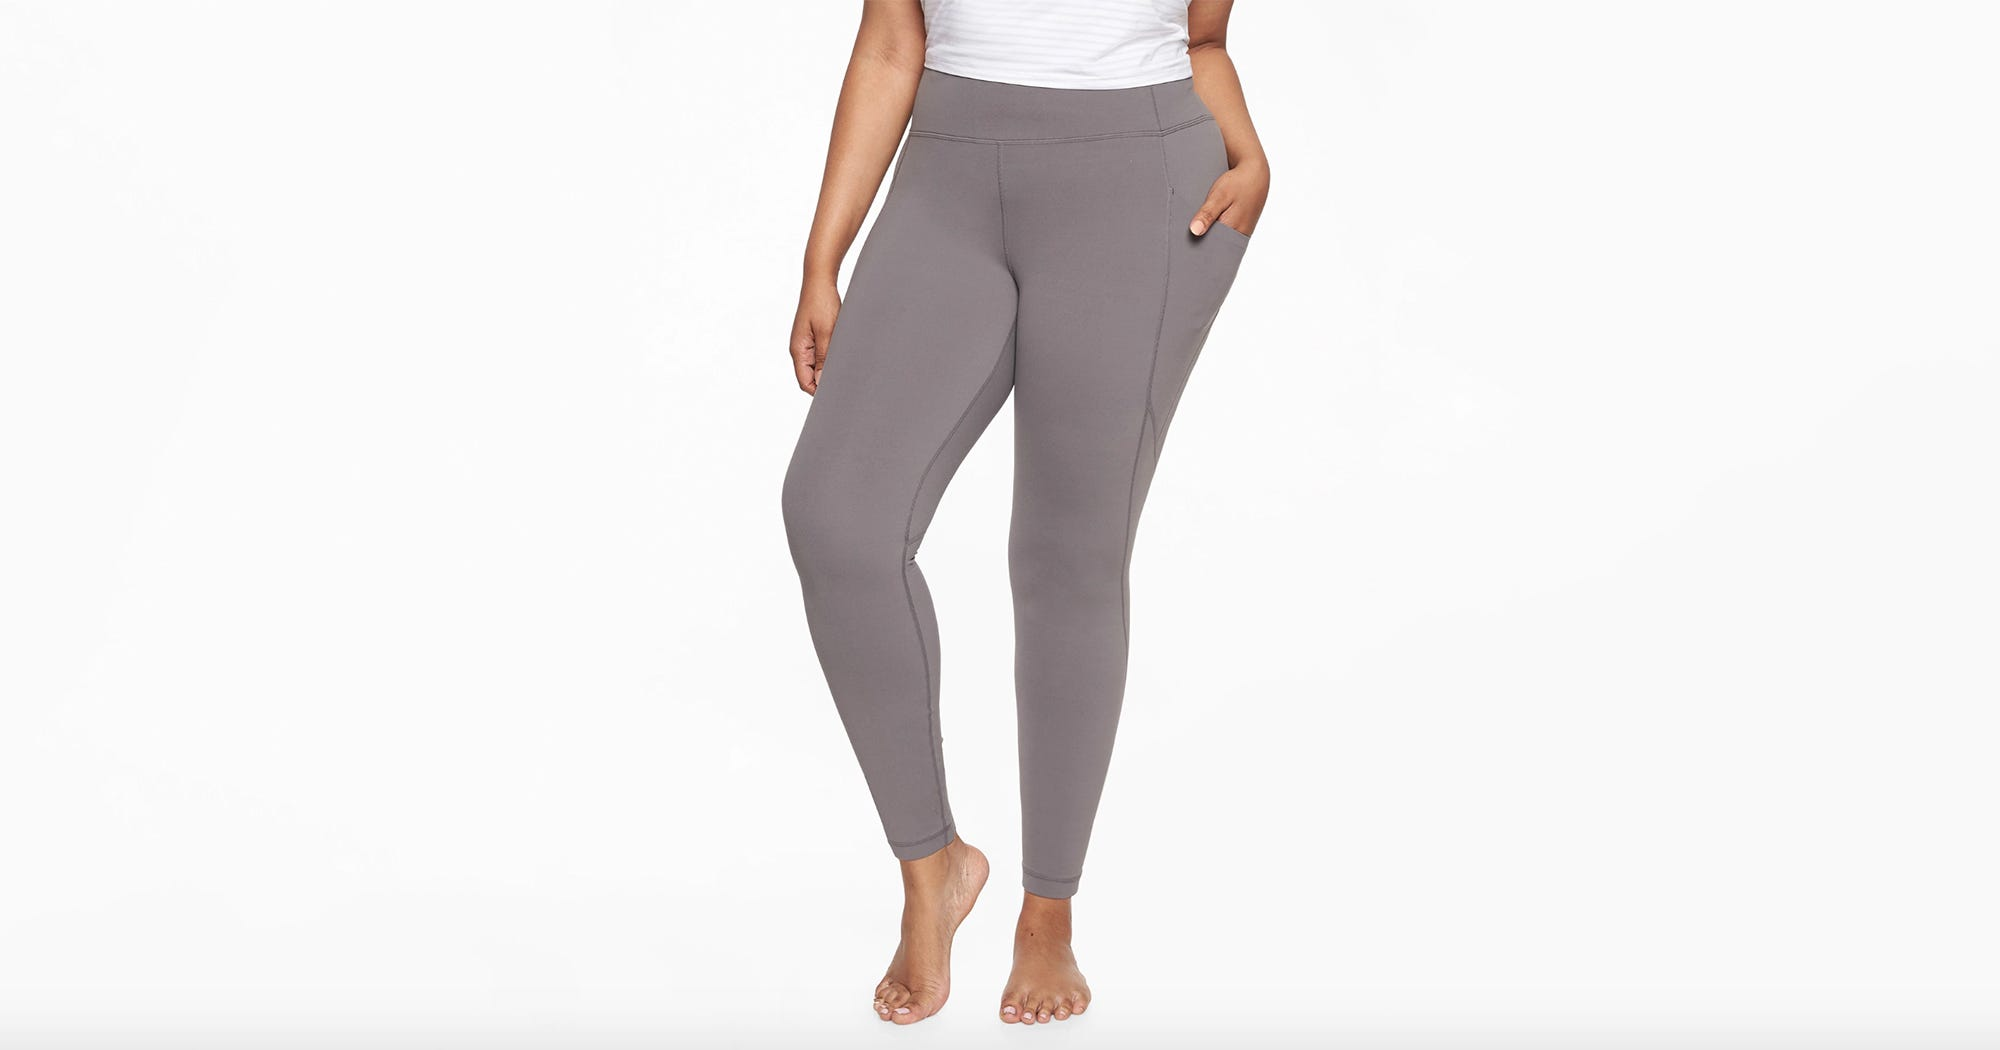 928c25e653 Workout Leggings With Pockets On The Side For Phone